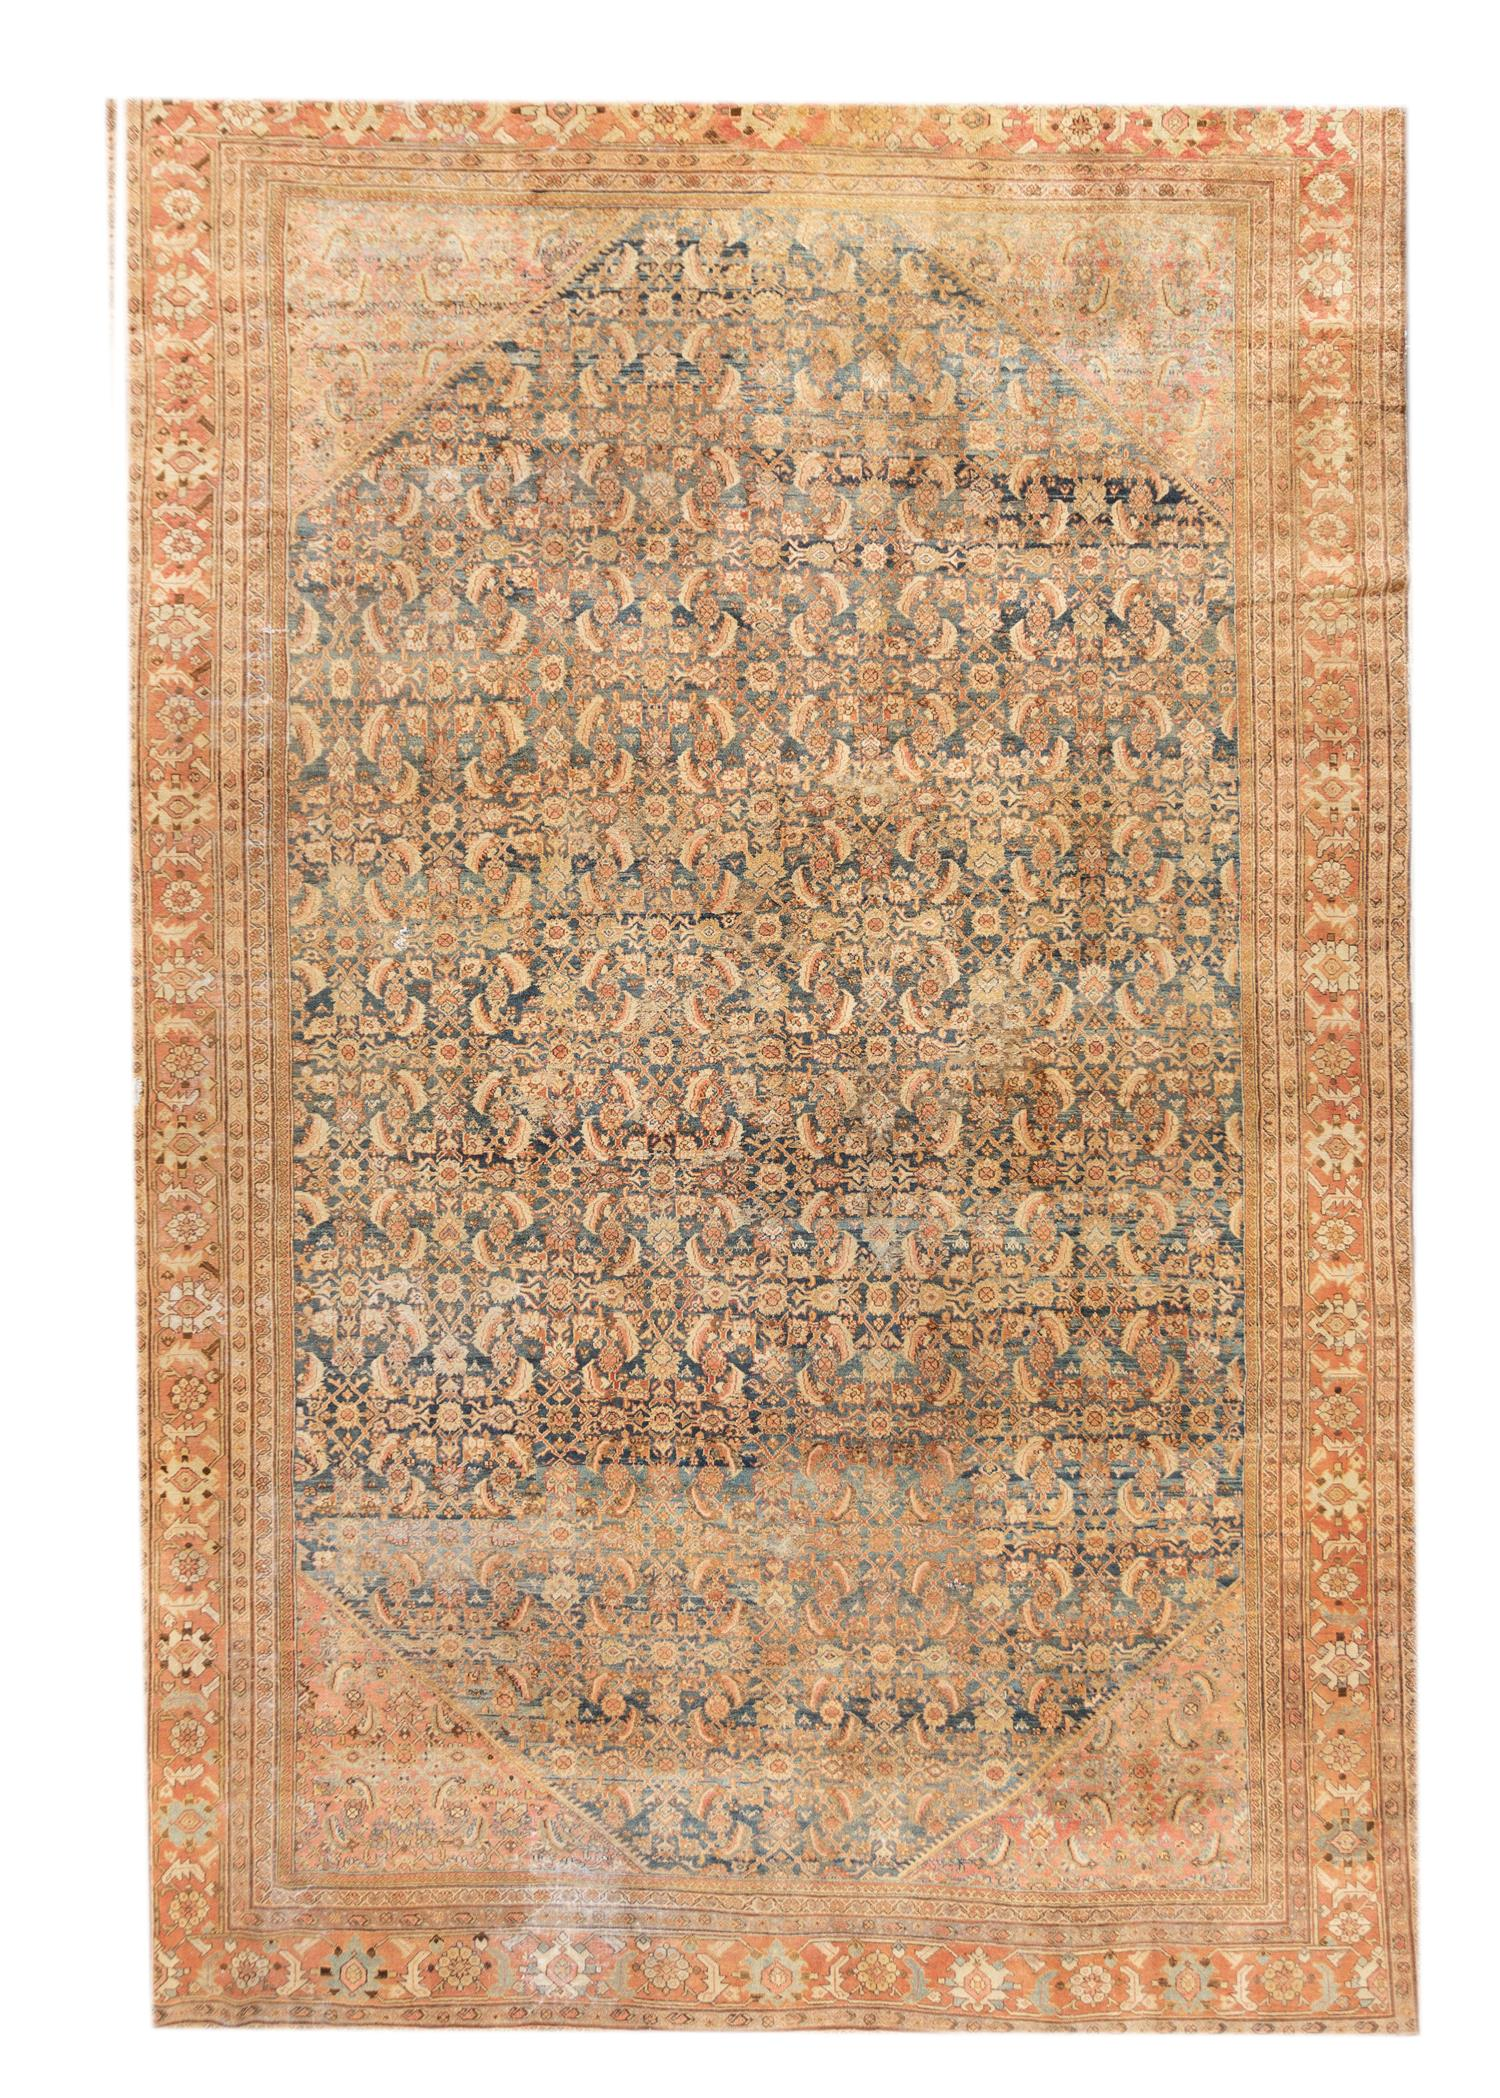 20th Century Antique Mahal Rug, 13' X 20'